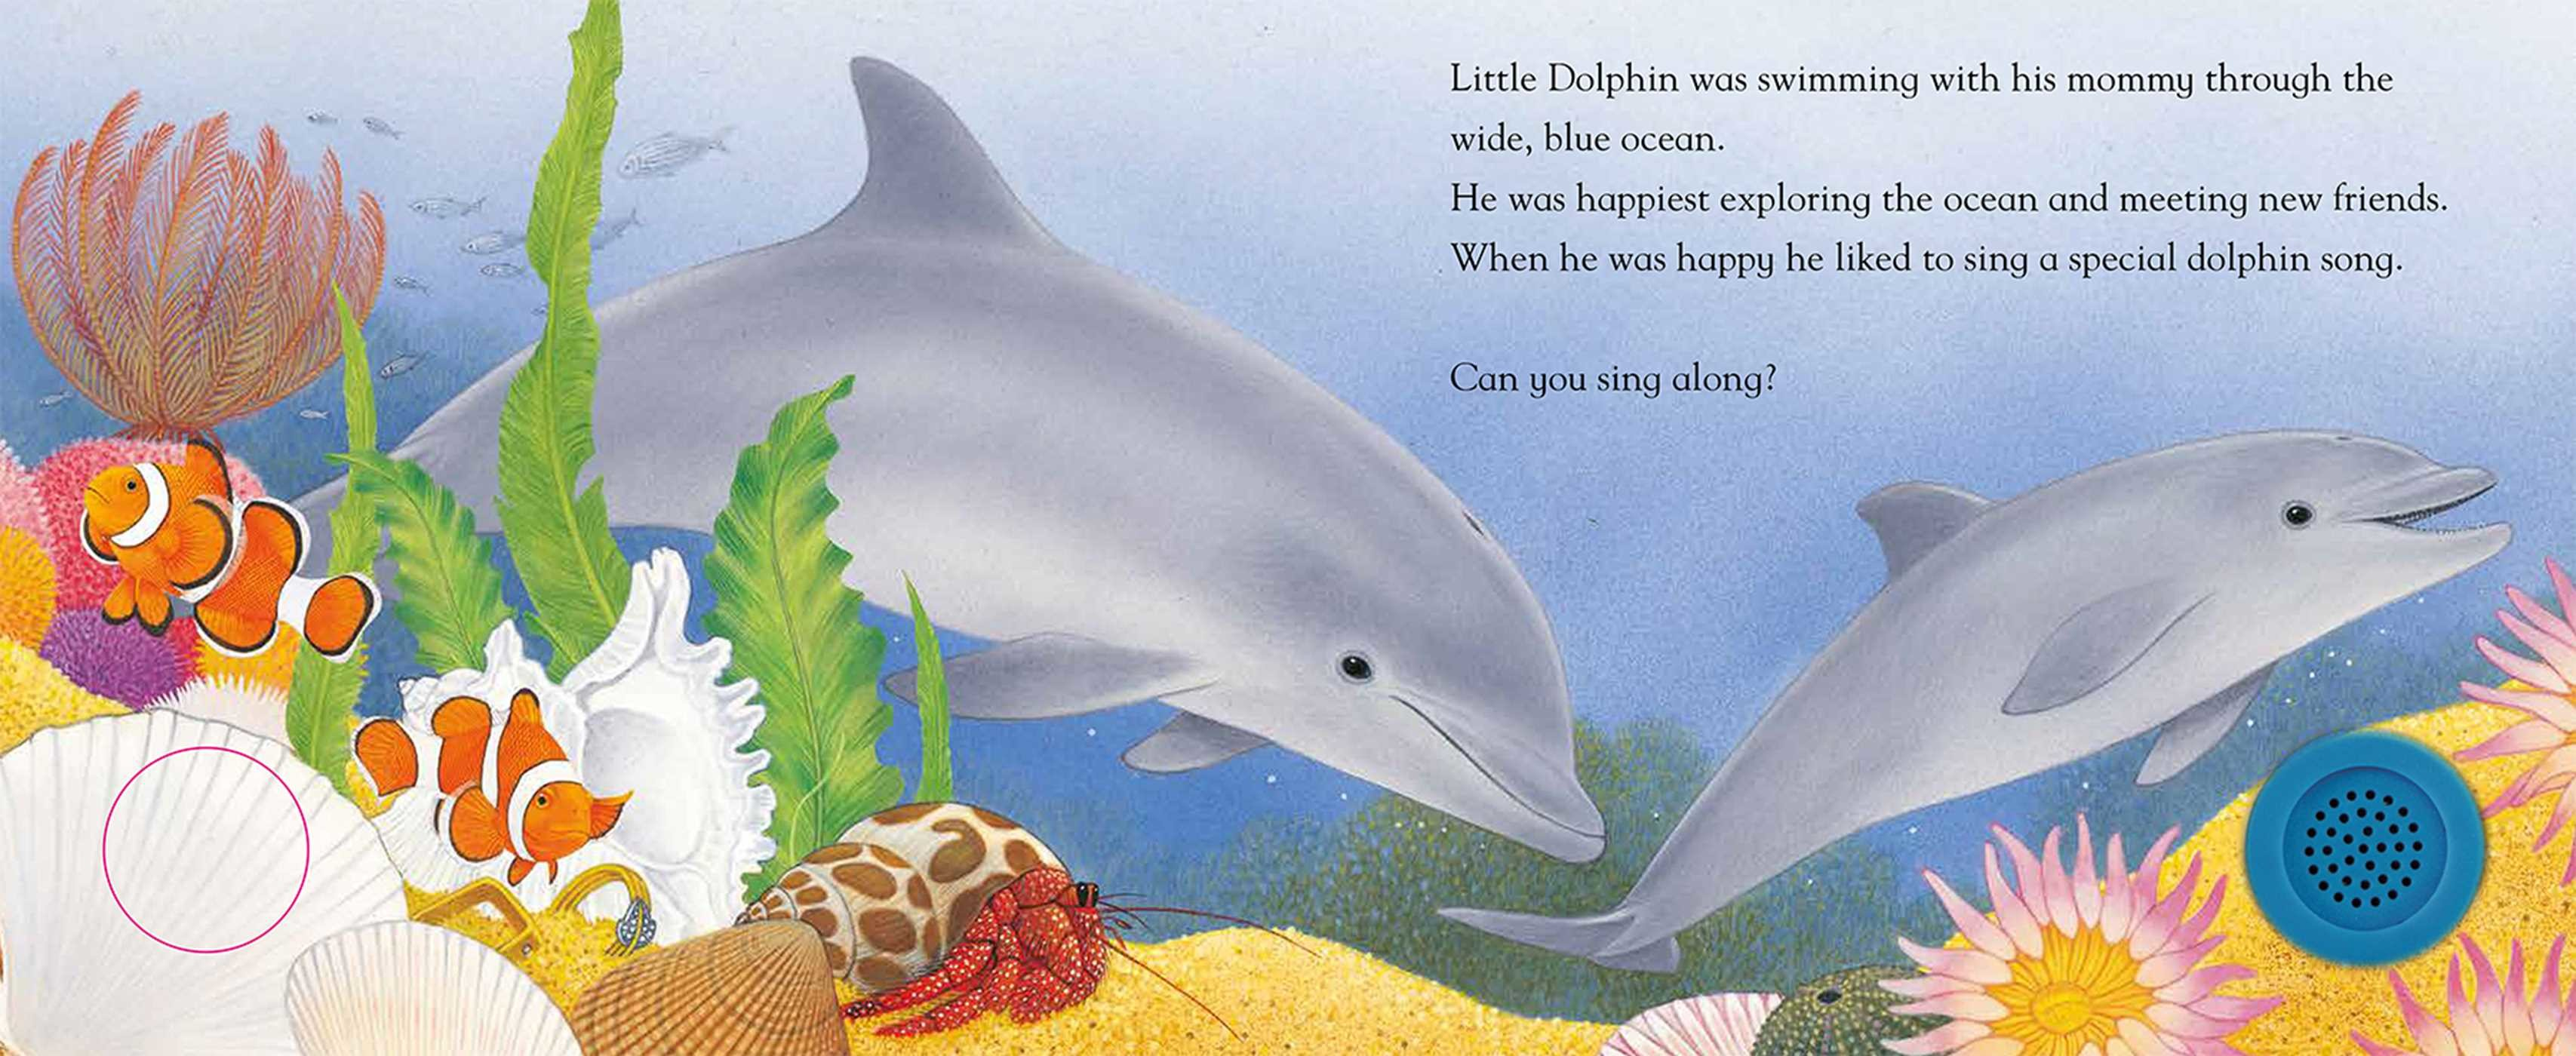 Little dolphin sings a song 9781626869417.in01